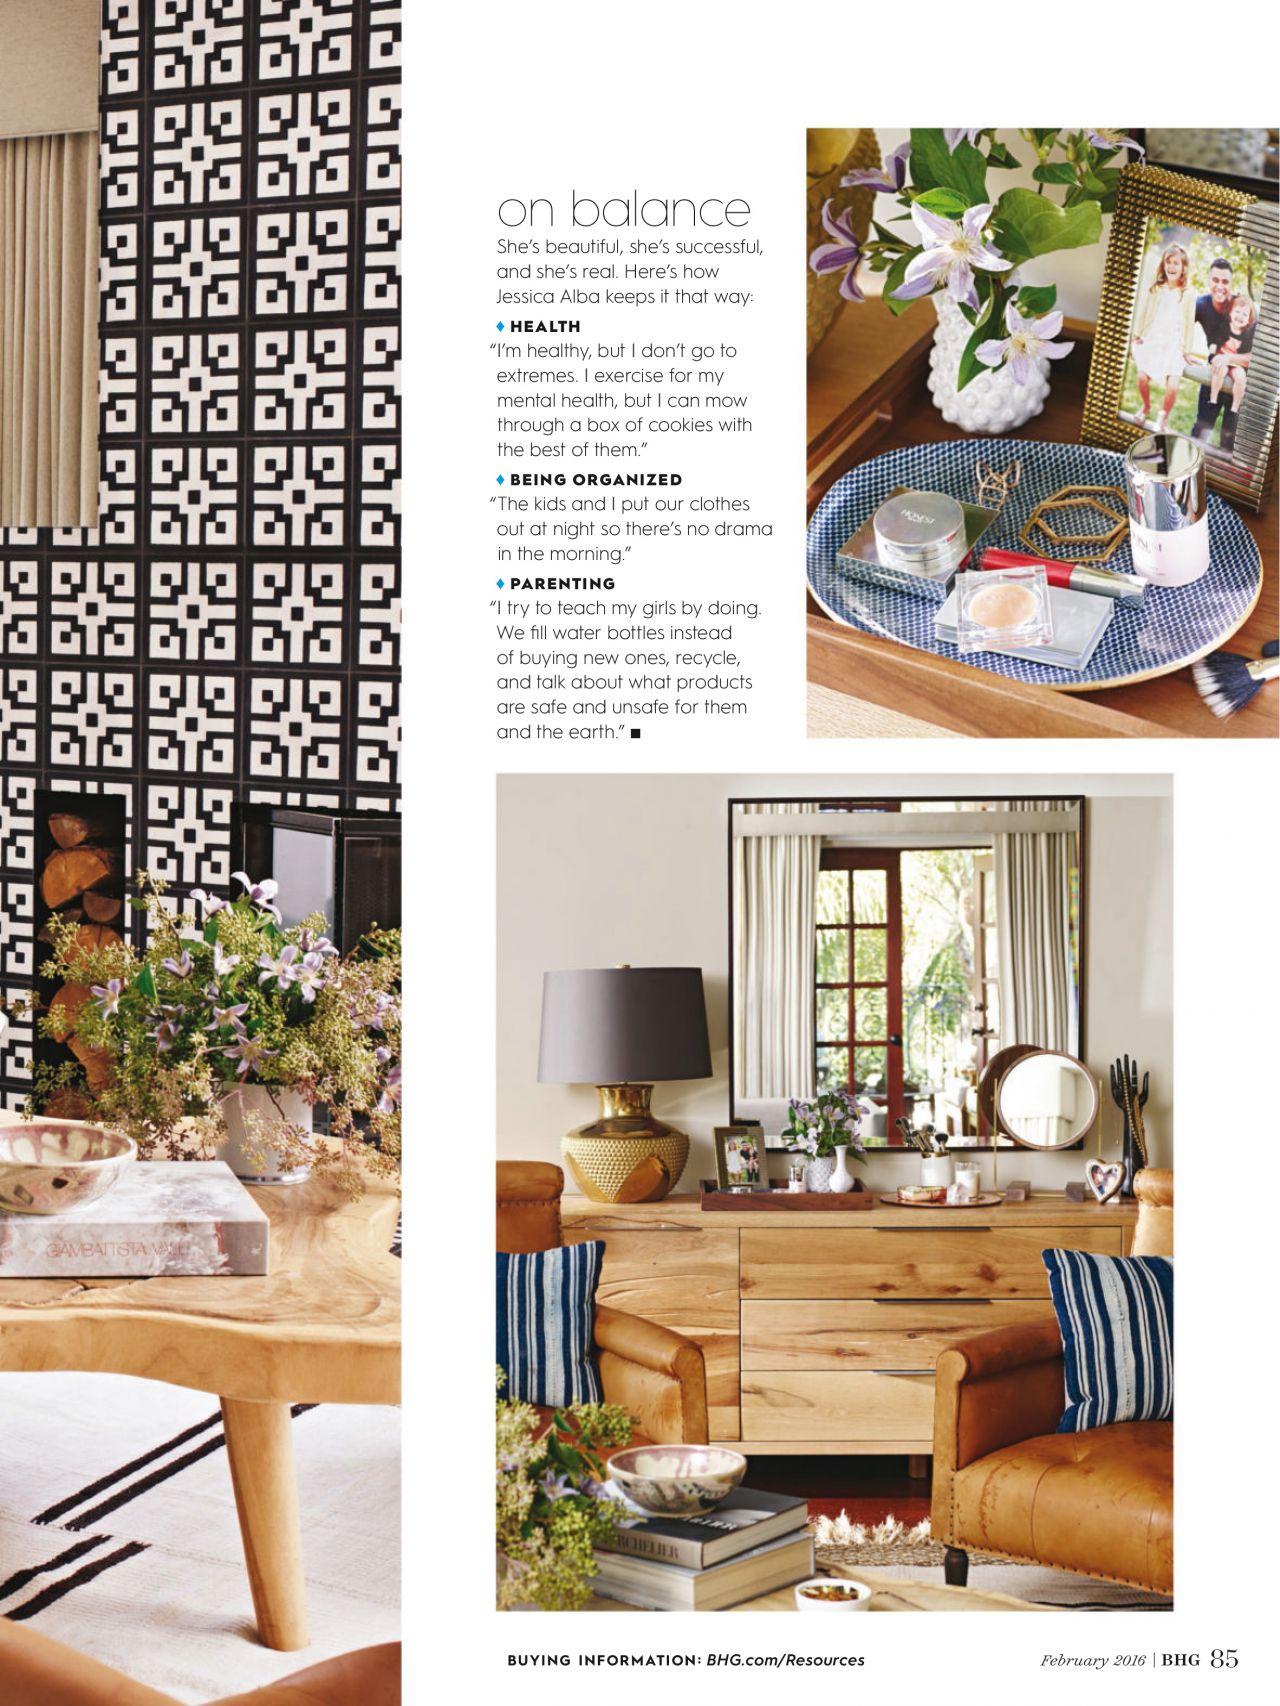 Alba Better Homes And Gardens Magazine February 2016 Issue